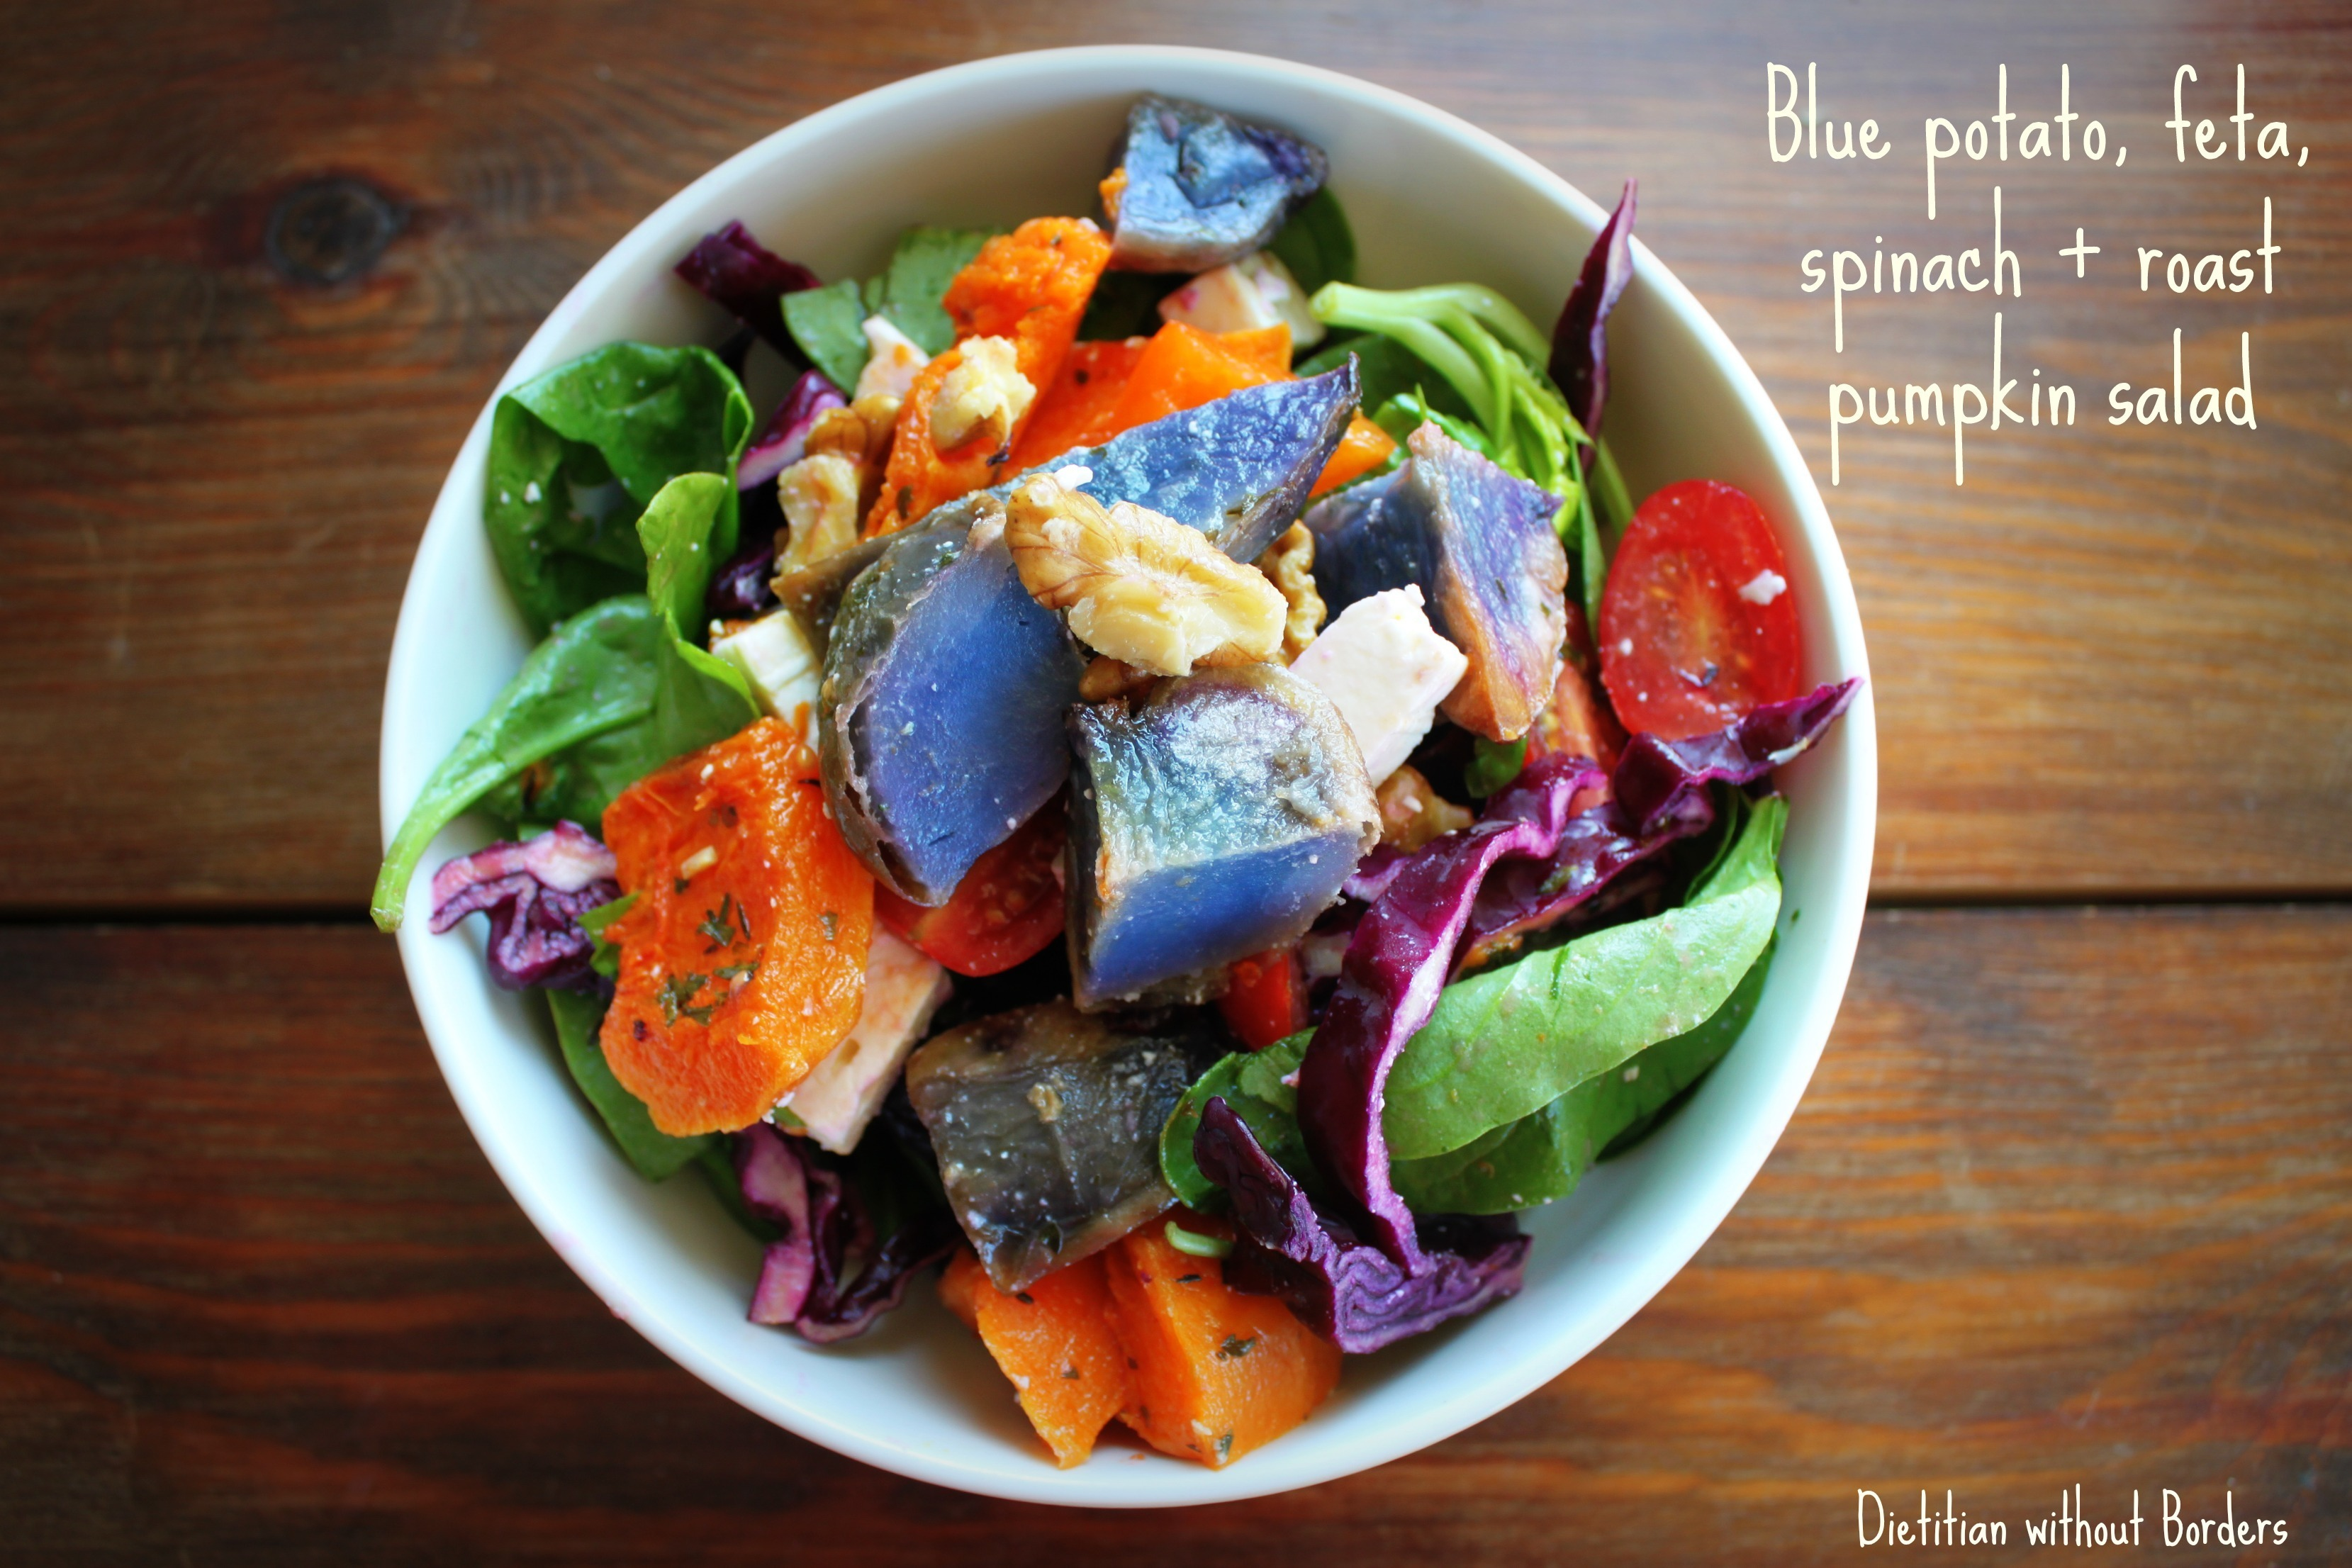 Blue potato, feta, spinach and roast pumpkin salad